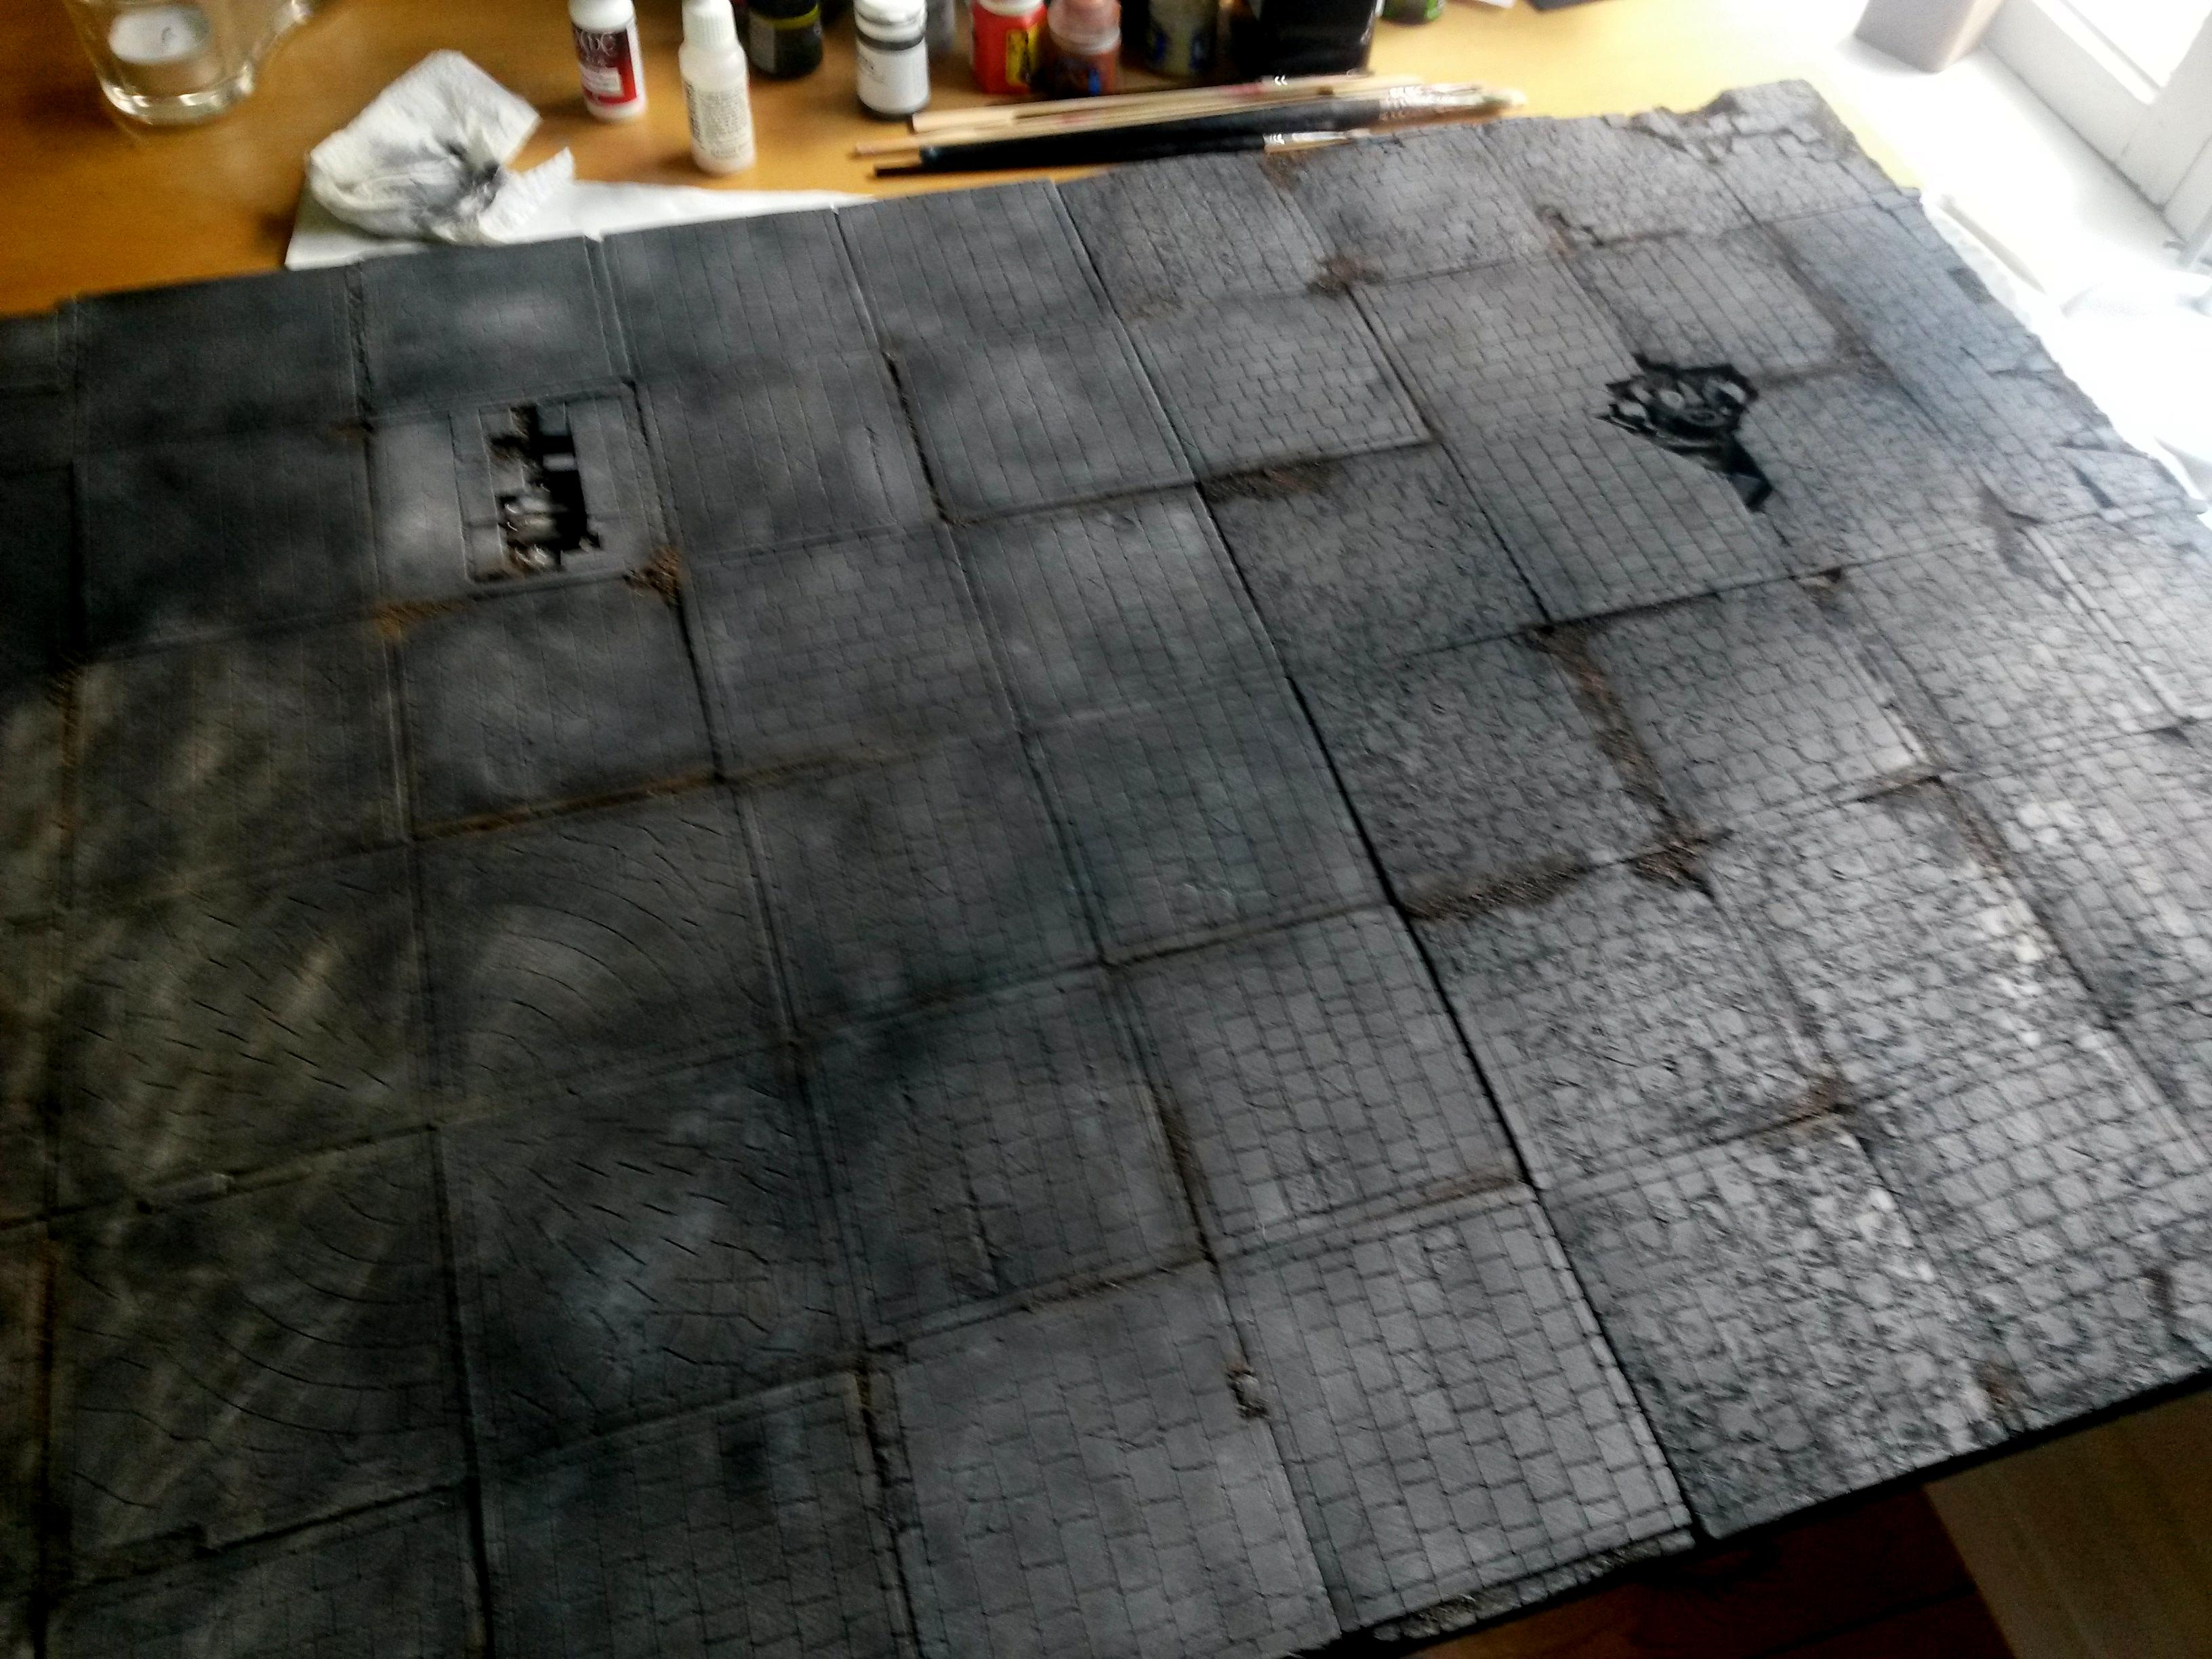 The undercity gameboard